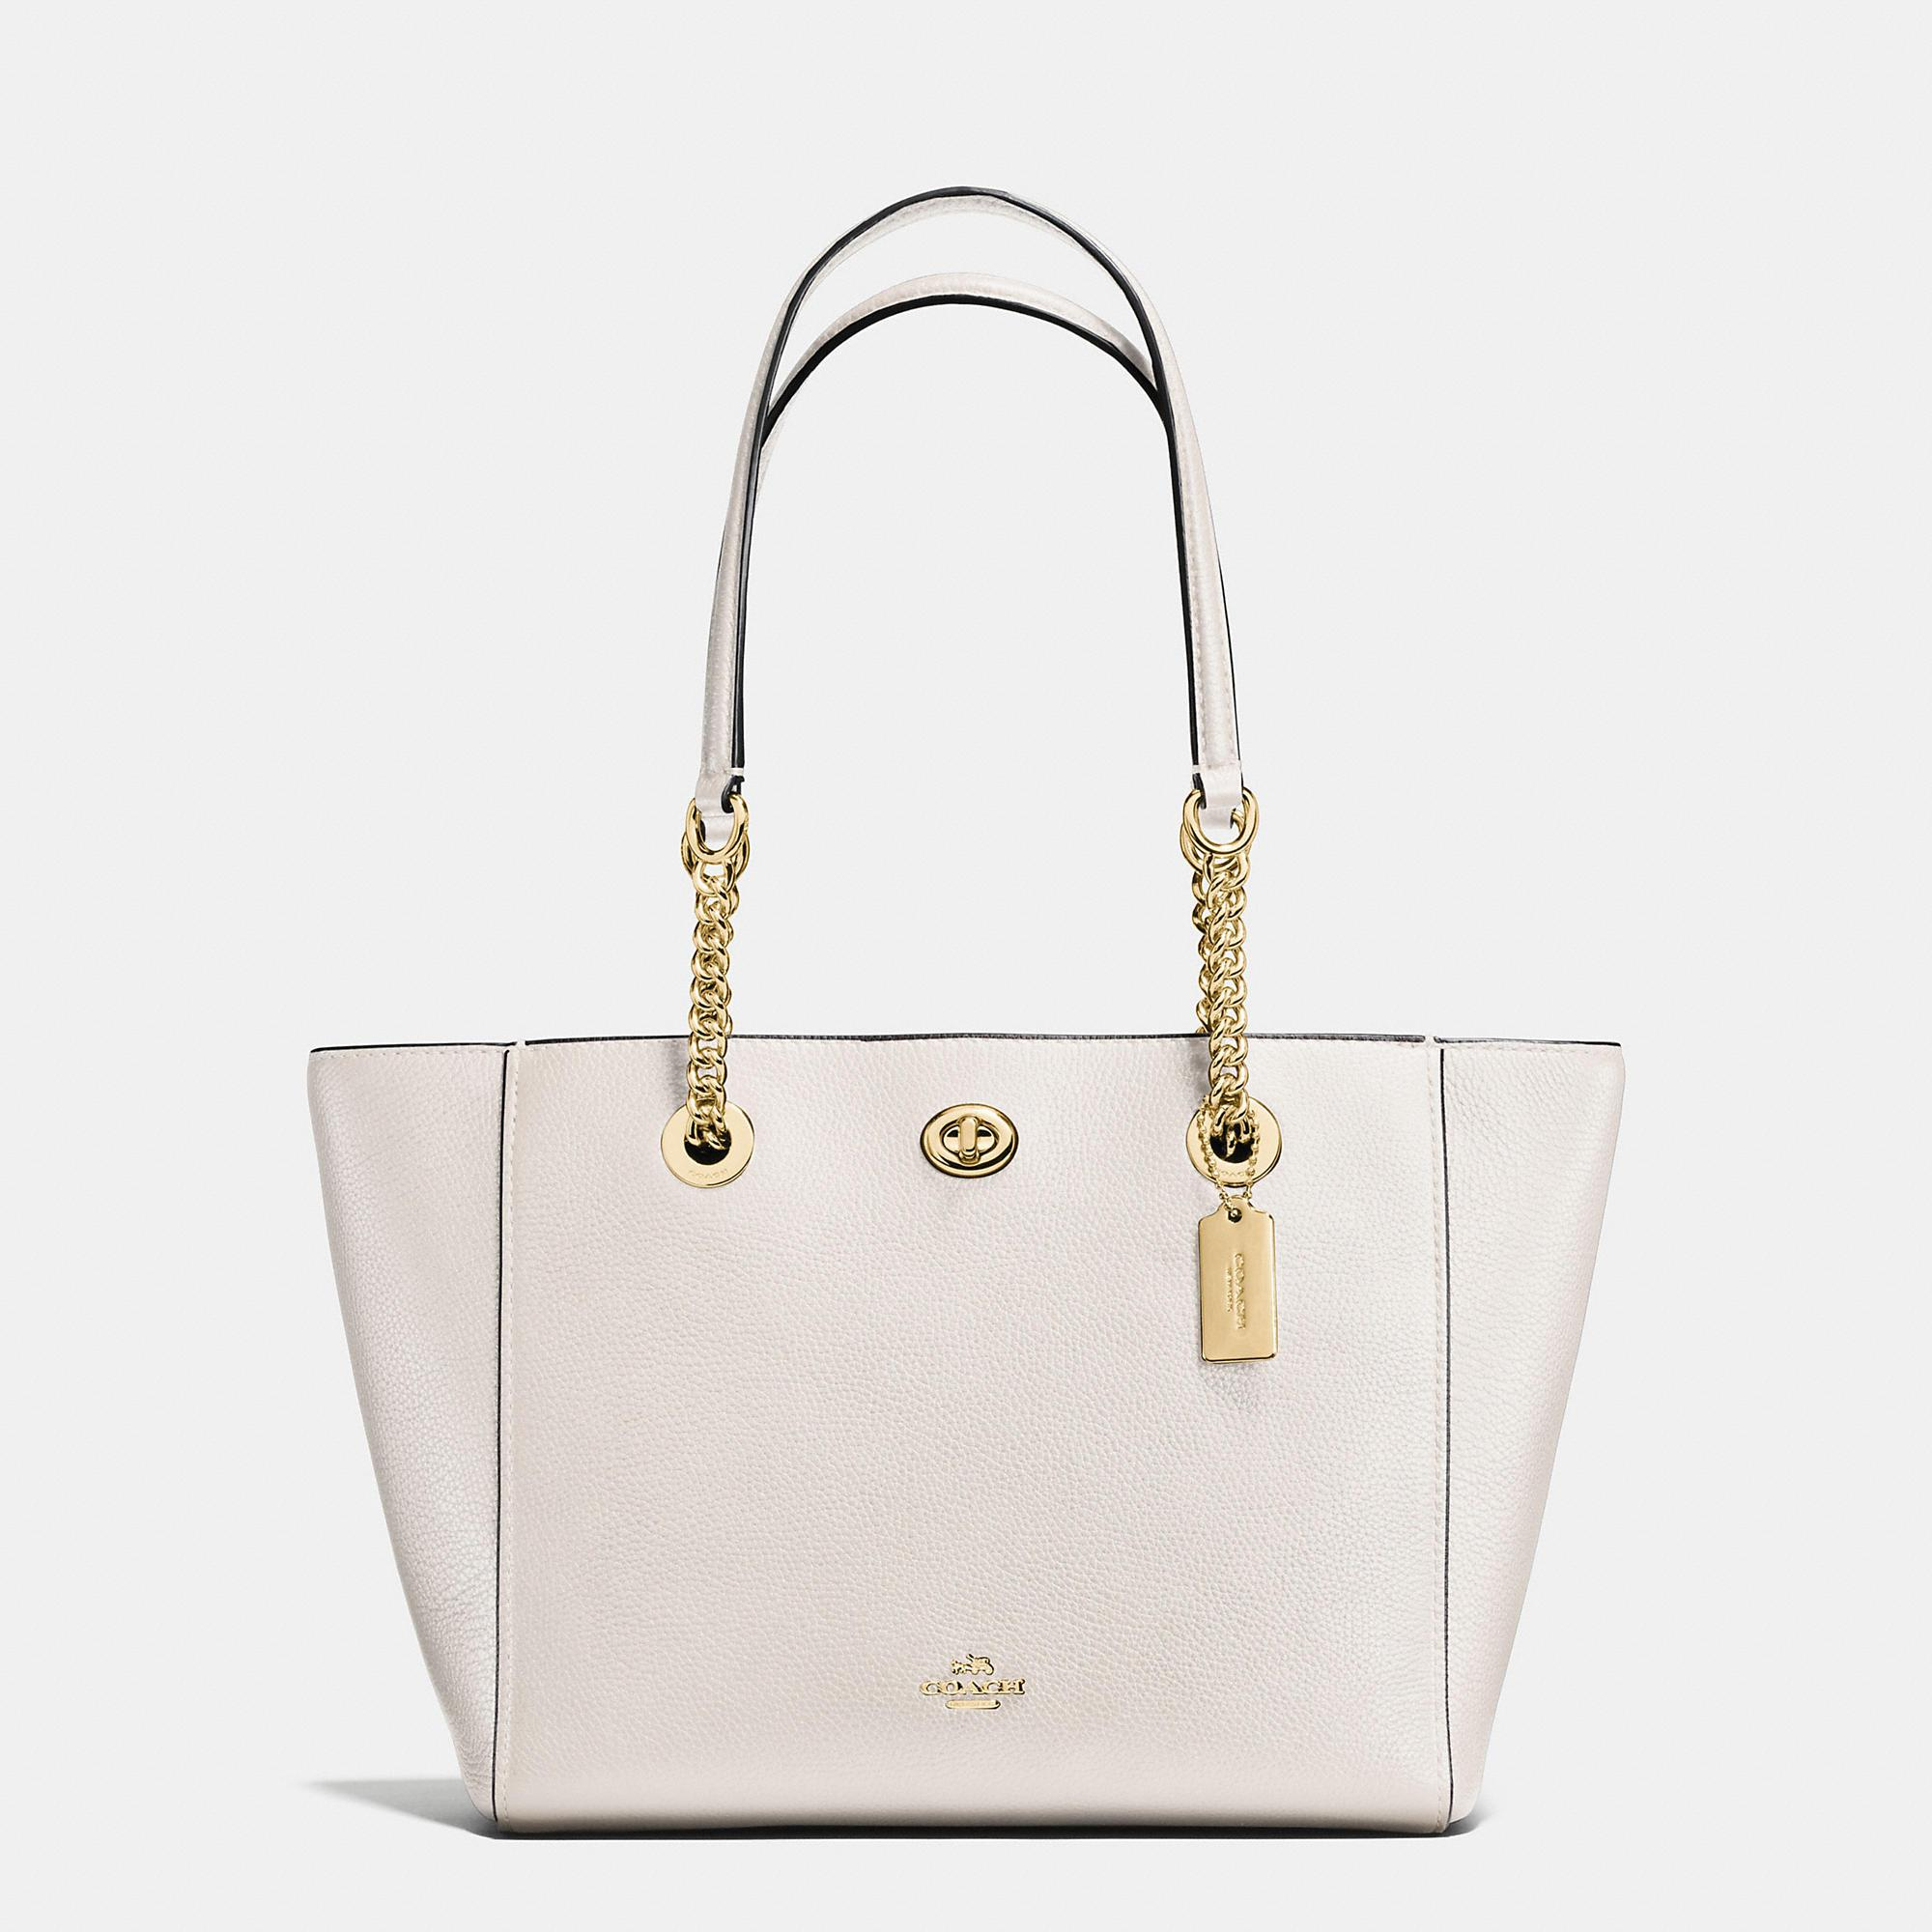 3a5b6fcac Coach Turnlock Chain Tote 27 - Women's In Light Gold/Chalk | ModeSens